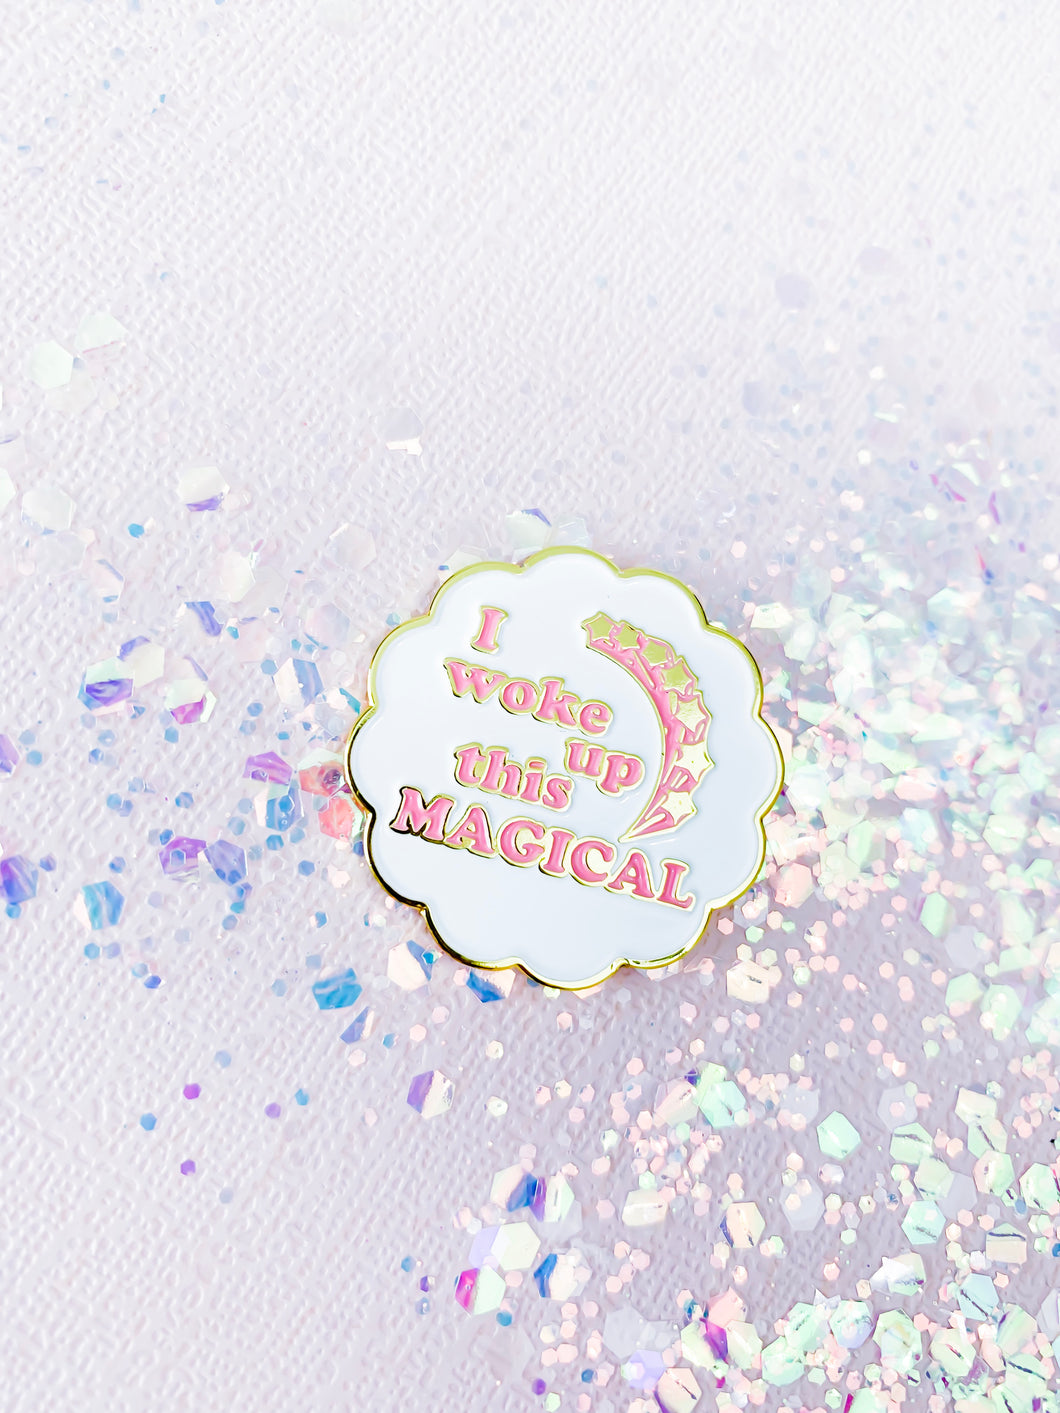 I WOKE UP THIS MAGICAL enamel pin